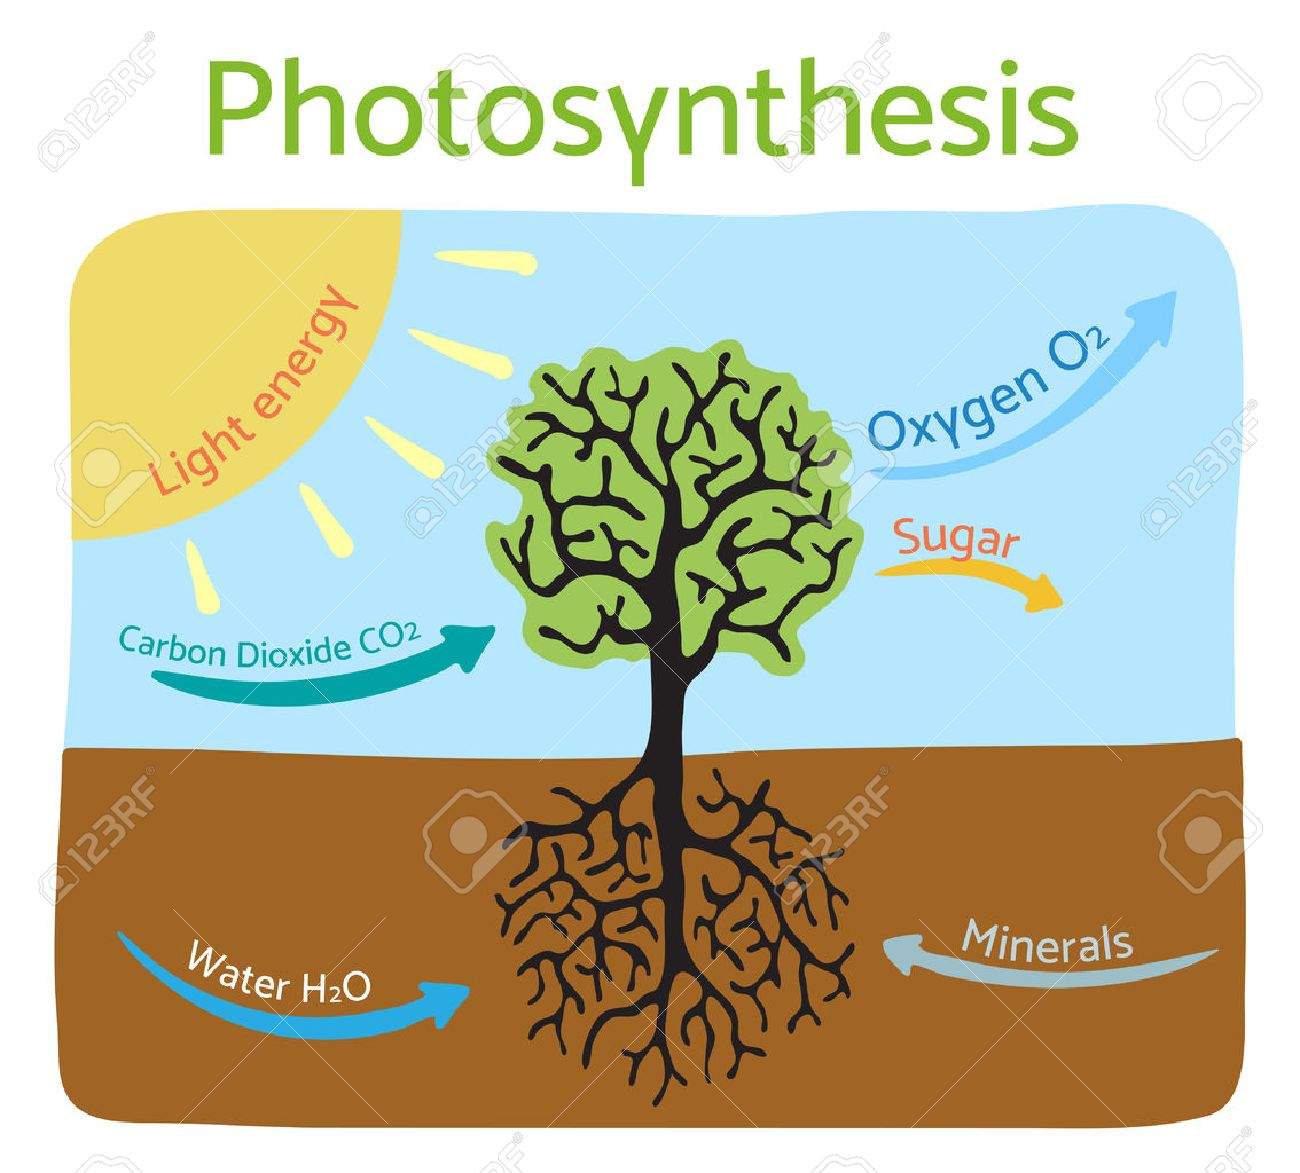 Photosynthesis diagram schematic illustration of the photosynthesis photosynthesis diagram schematic illustration of the photosynthesis process stock vector 56913780 ccuart Gallery